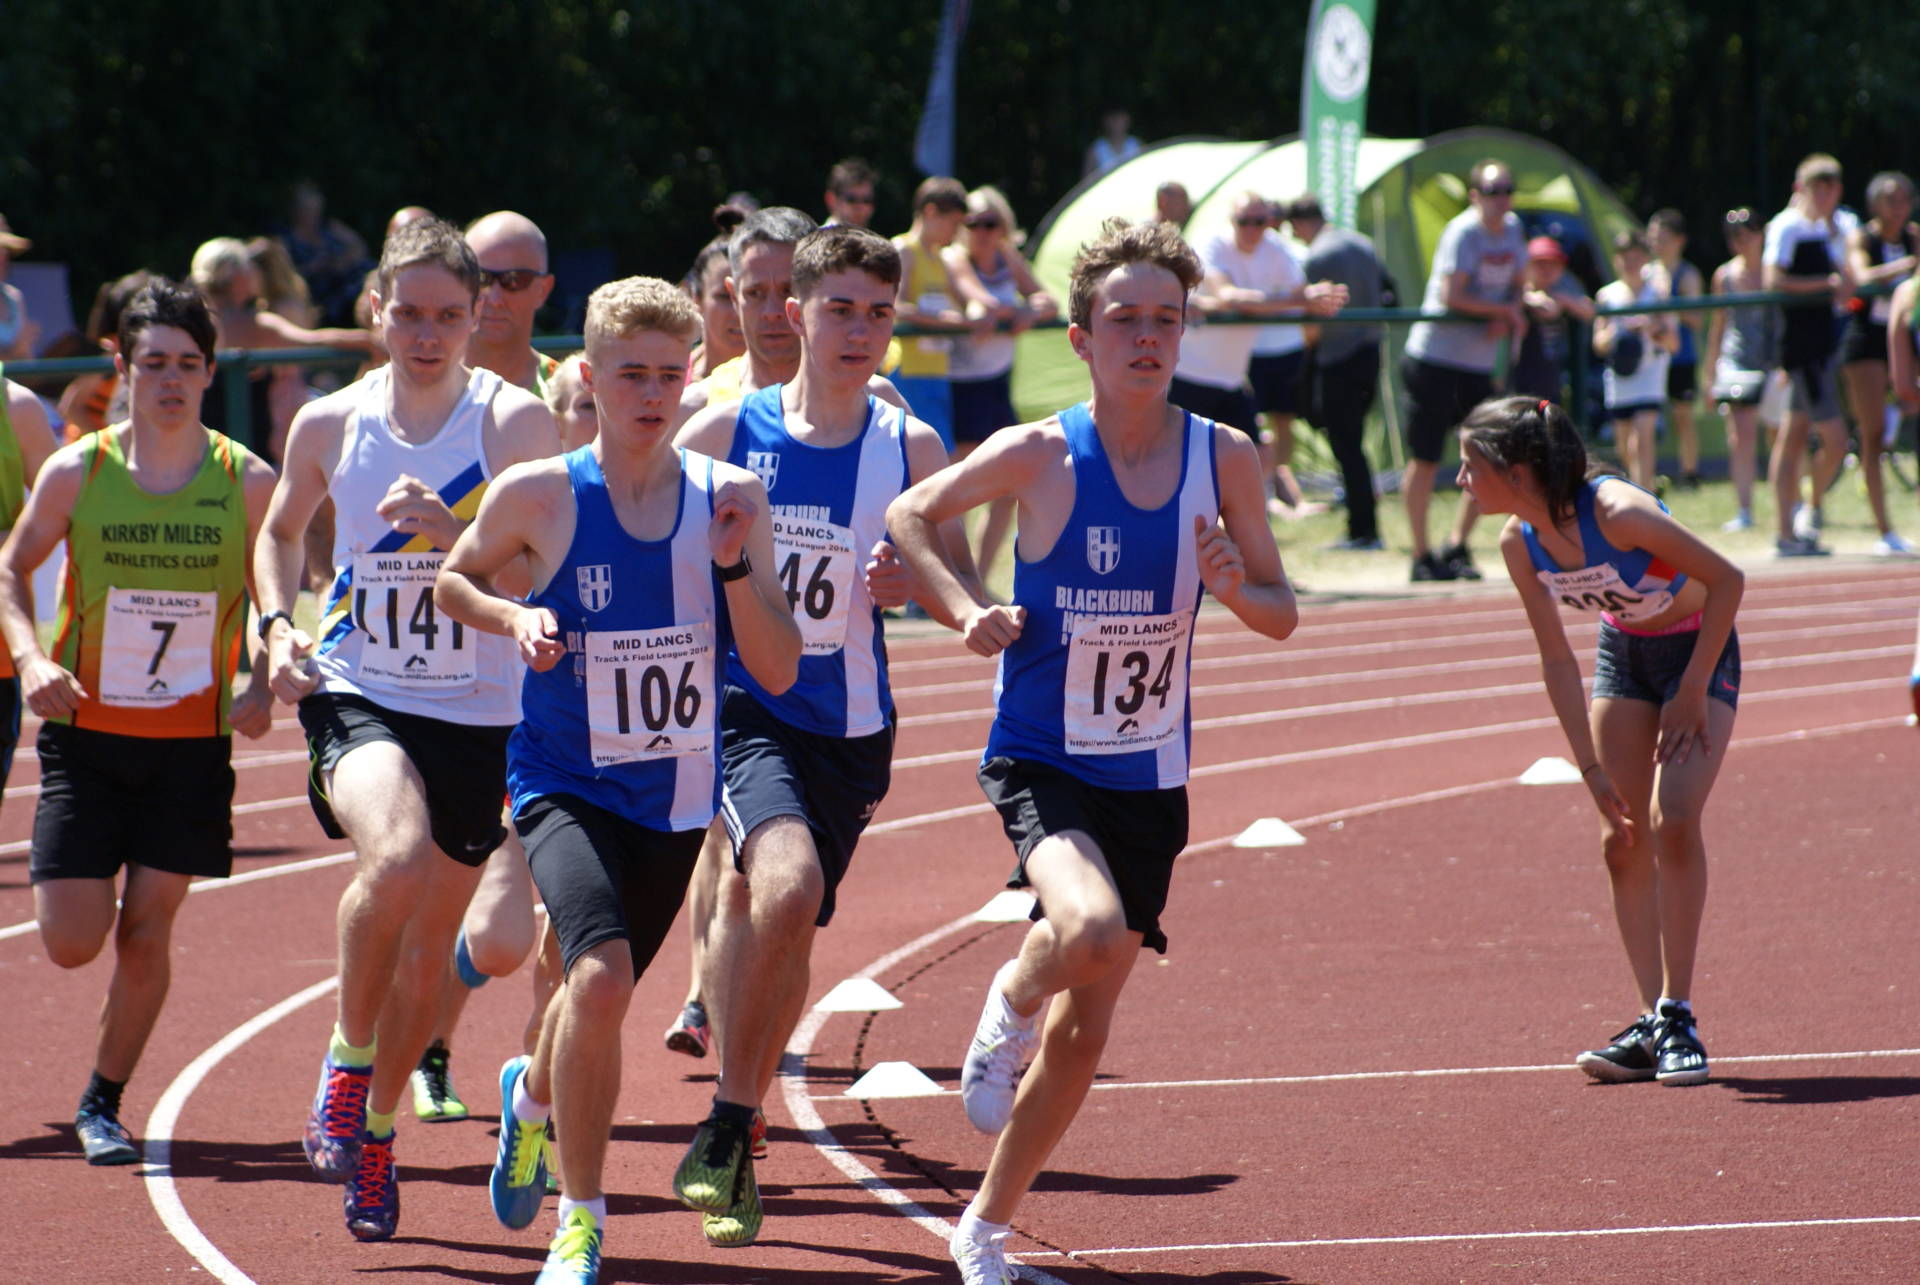 English Schools qualification for Harriers – Mid Lancs T &F League at Litherland – Harriers Win Team at Astley Park – John & Thomas in top 5 at Stoodley Pike – John 2nd at Cuerden 10k – Don Ashton Memorial Race – Skiddaw Fell Race – Trailblaster